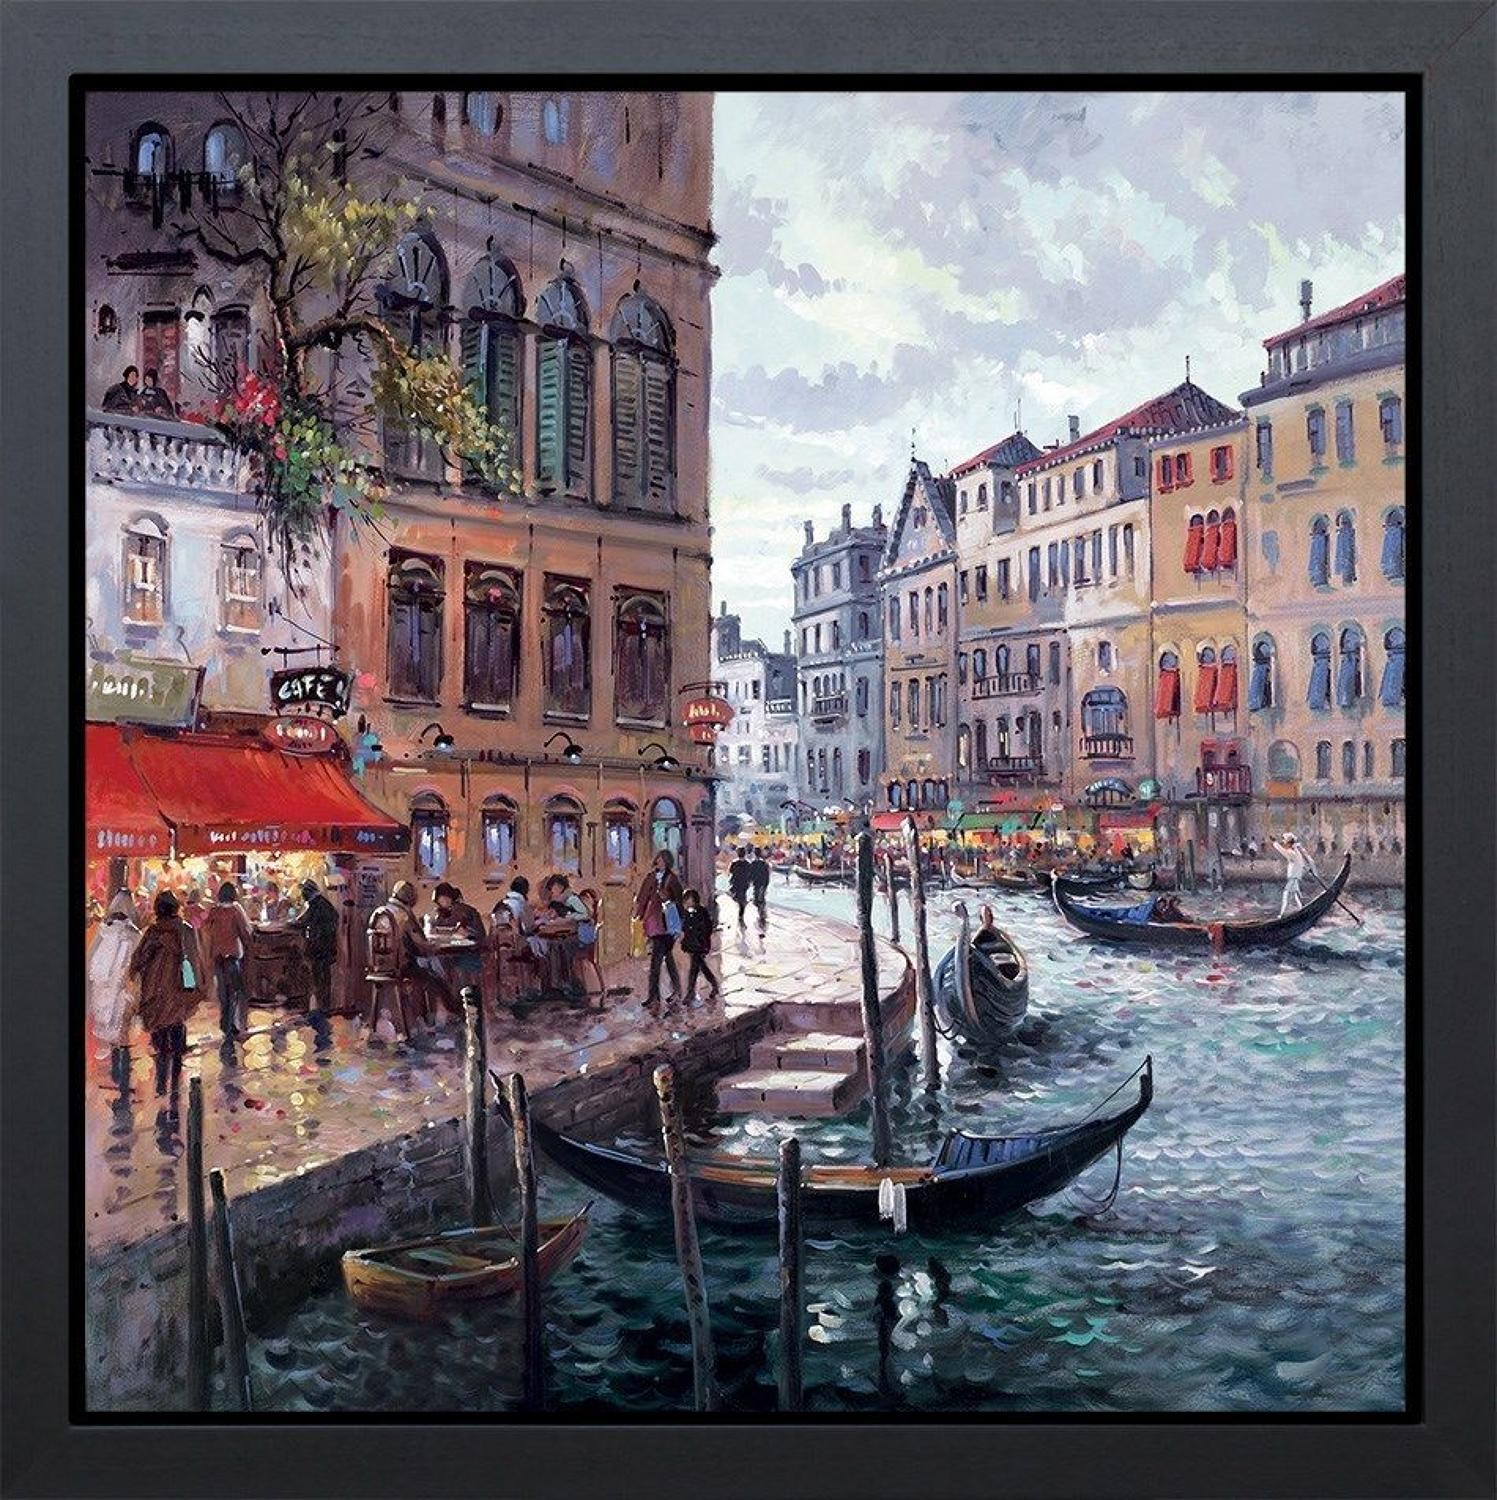 Dreaming Of Venice Framed Art Print by Henderson Cisz